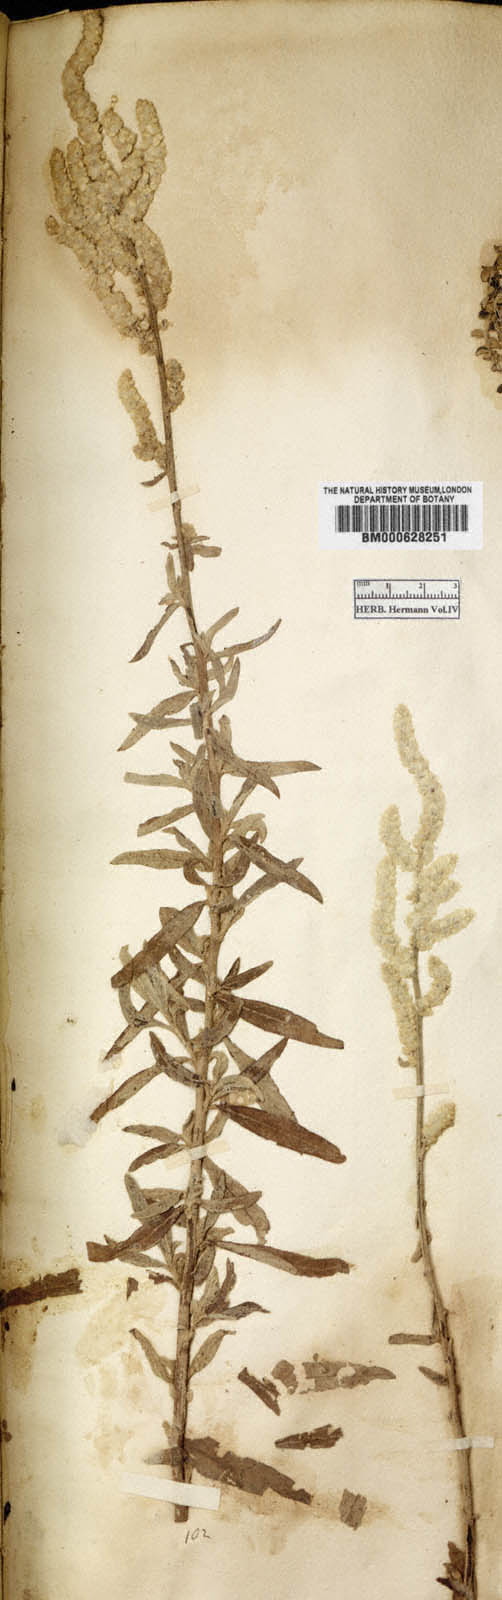 http://www.nhm.ac.uk//resources/research-curation/projects/hermann-herbarium/lgimages/BM000628251.JPG